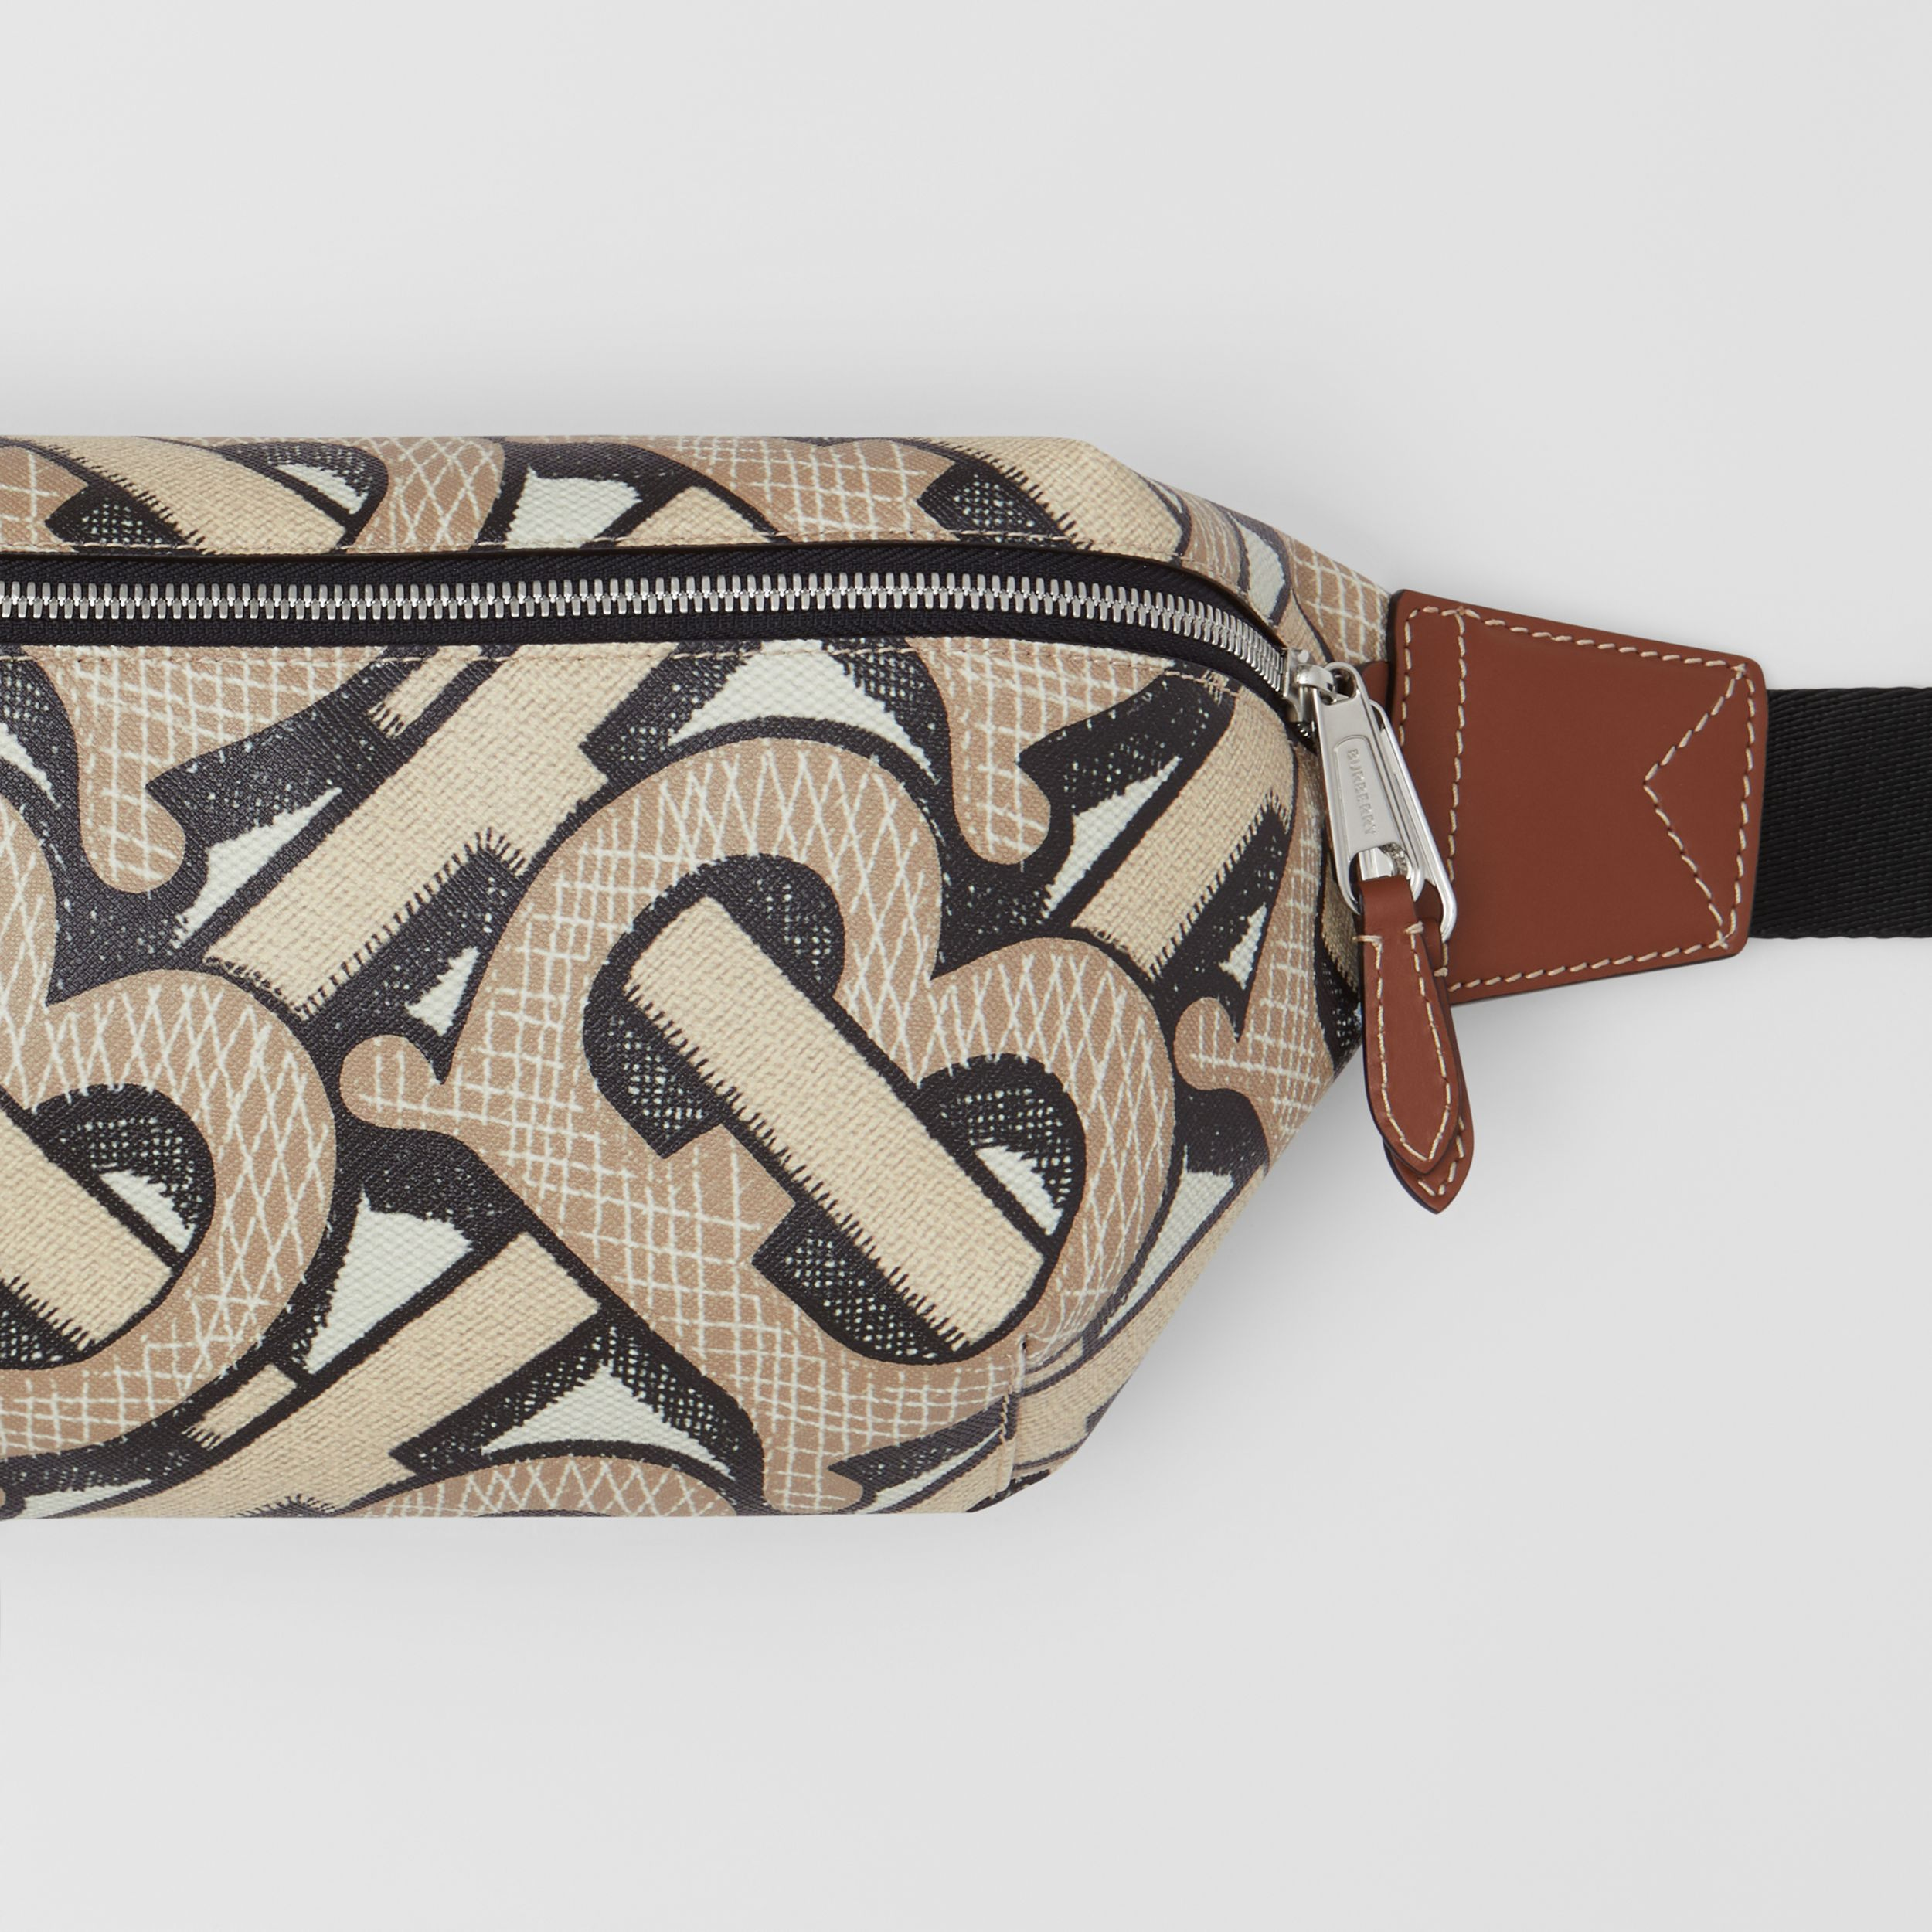 Monogram Print E-canvas Sonny Bum Bag in Dark Beige | Burberry - 2